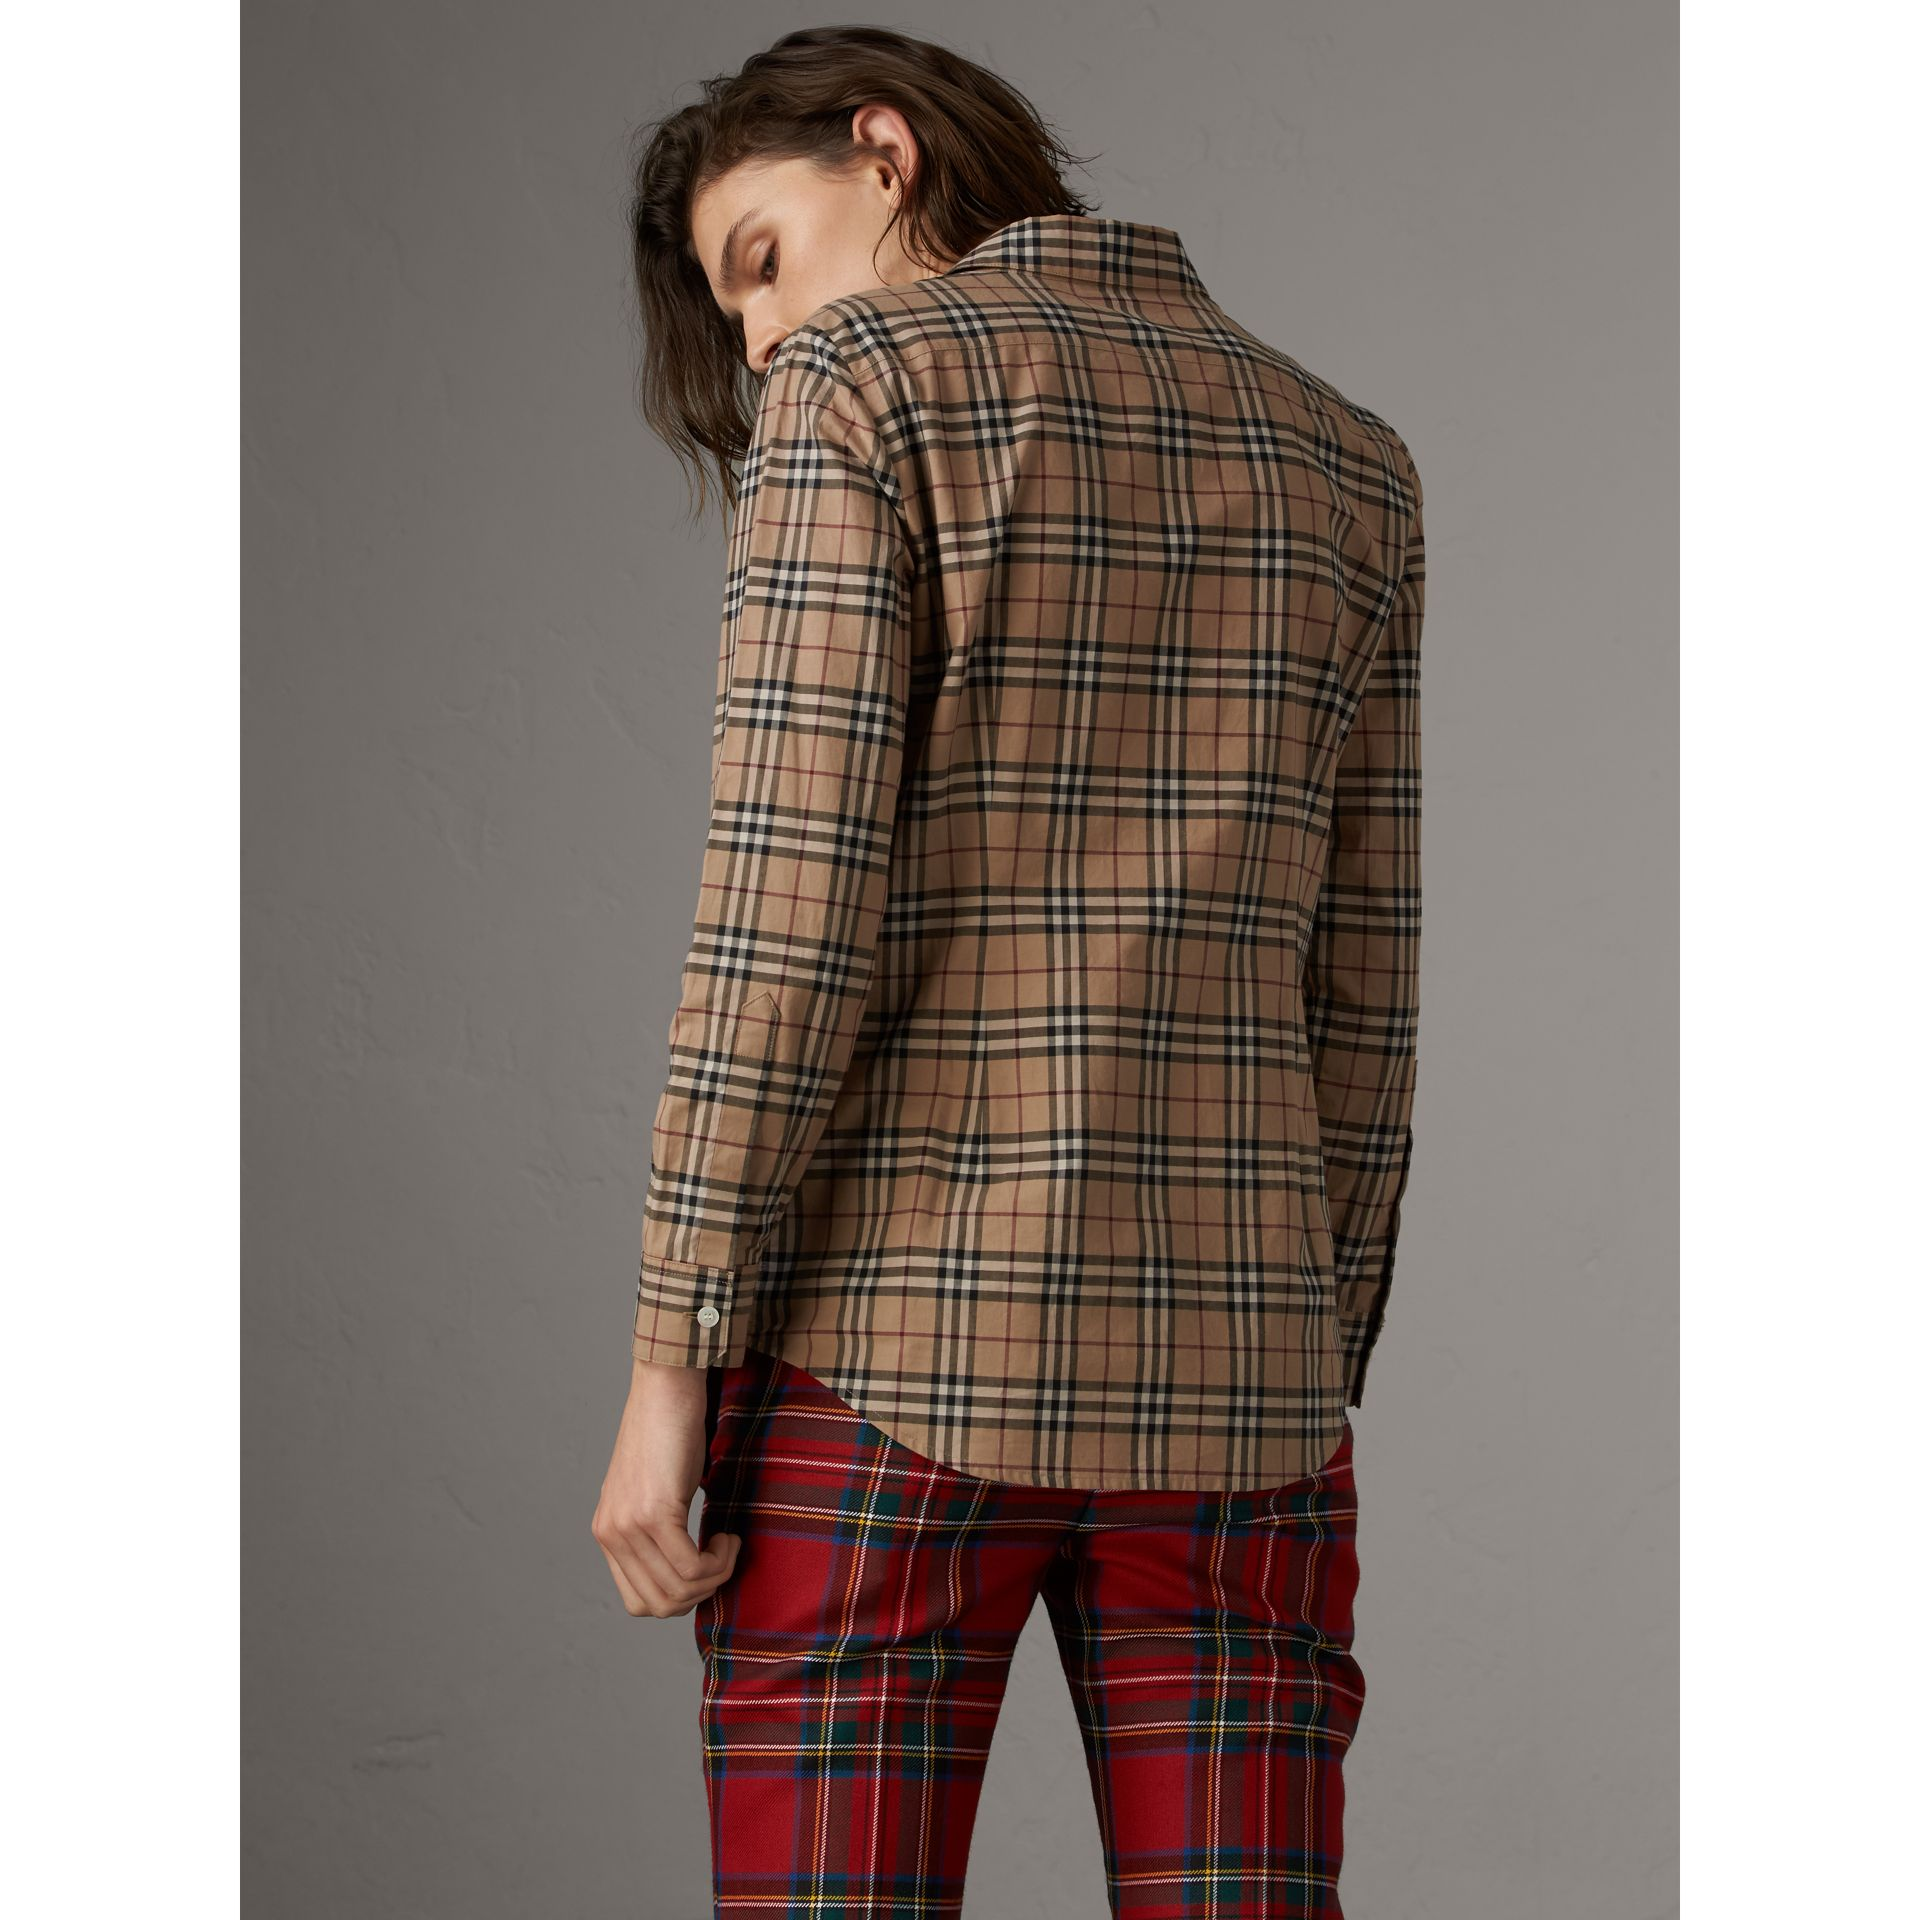 Vintage Check Cotton Shirt in Camel - Women | Burberry Singapore - gallery image 3